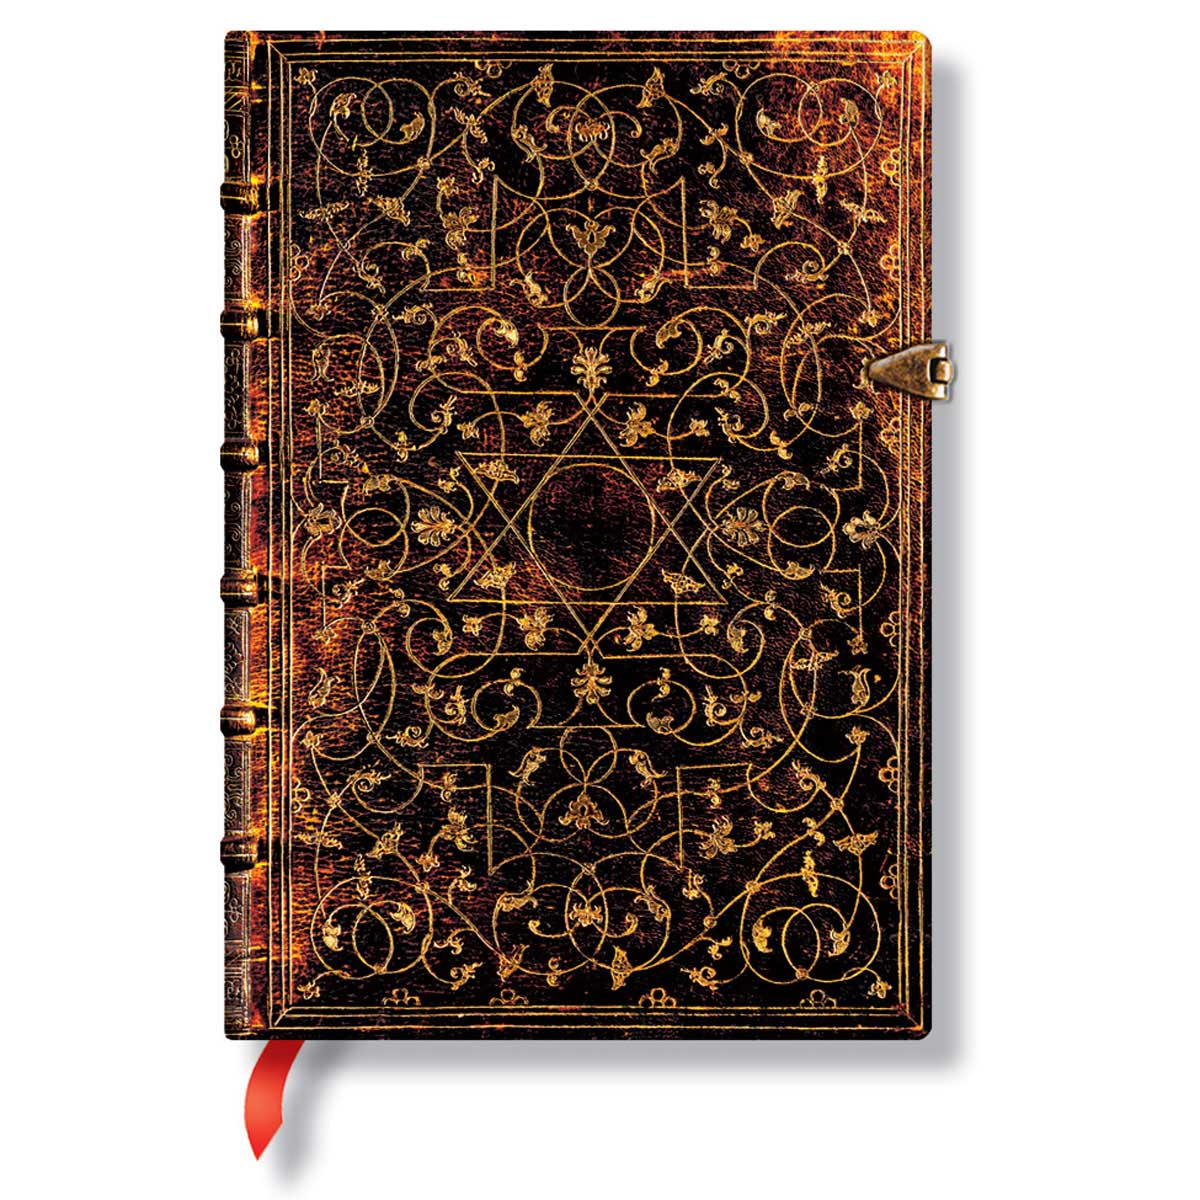 Paperblanks Grolier Midi 5 x 7 Inch Journal